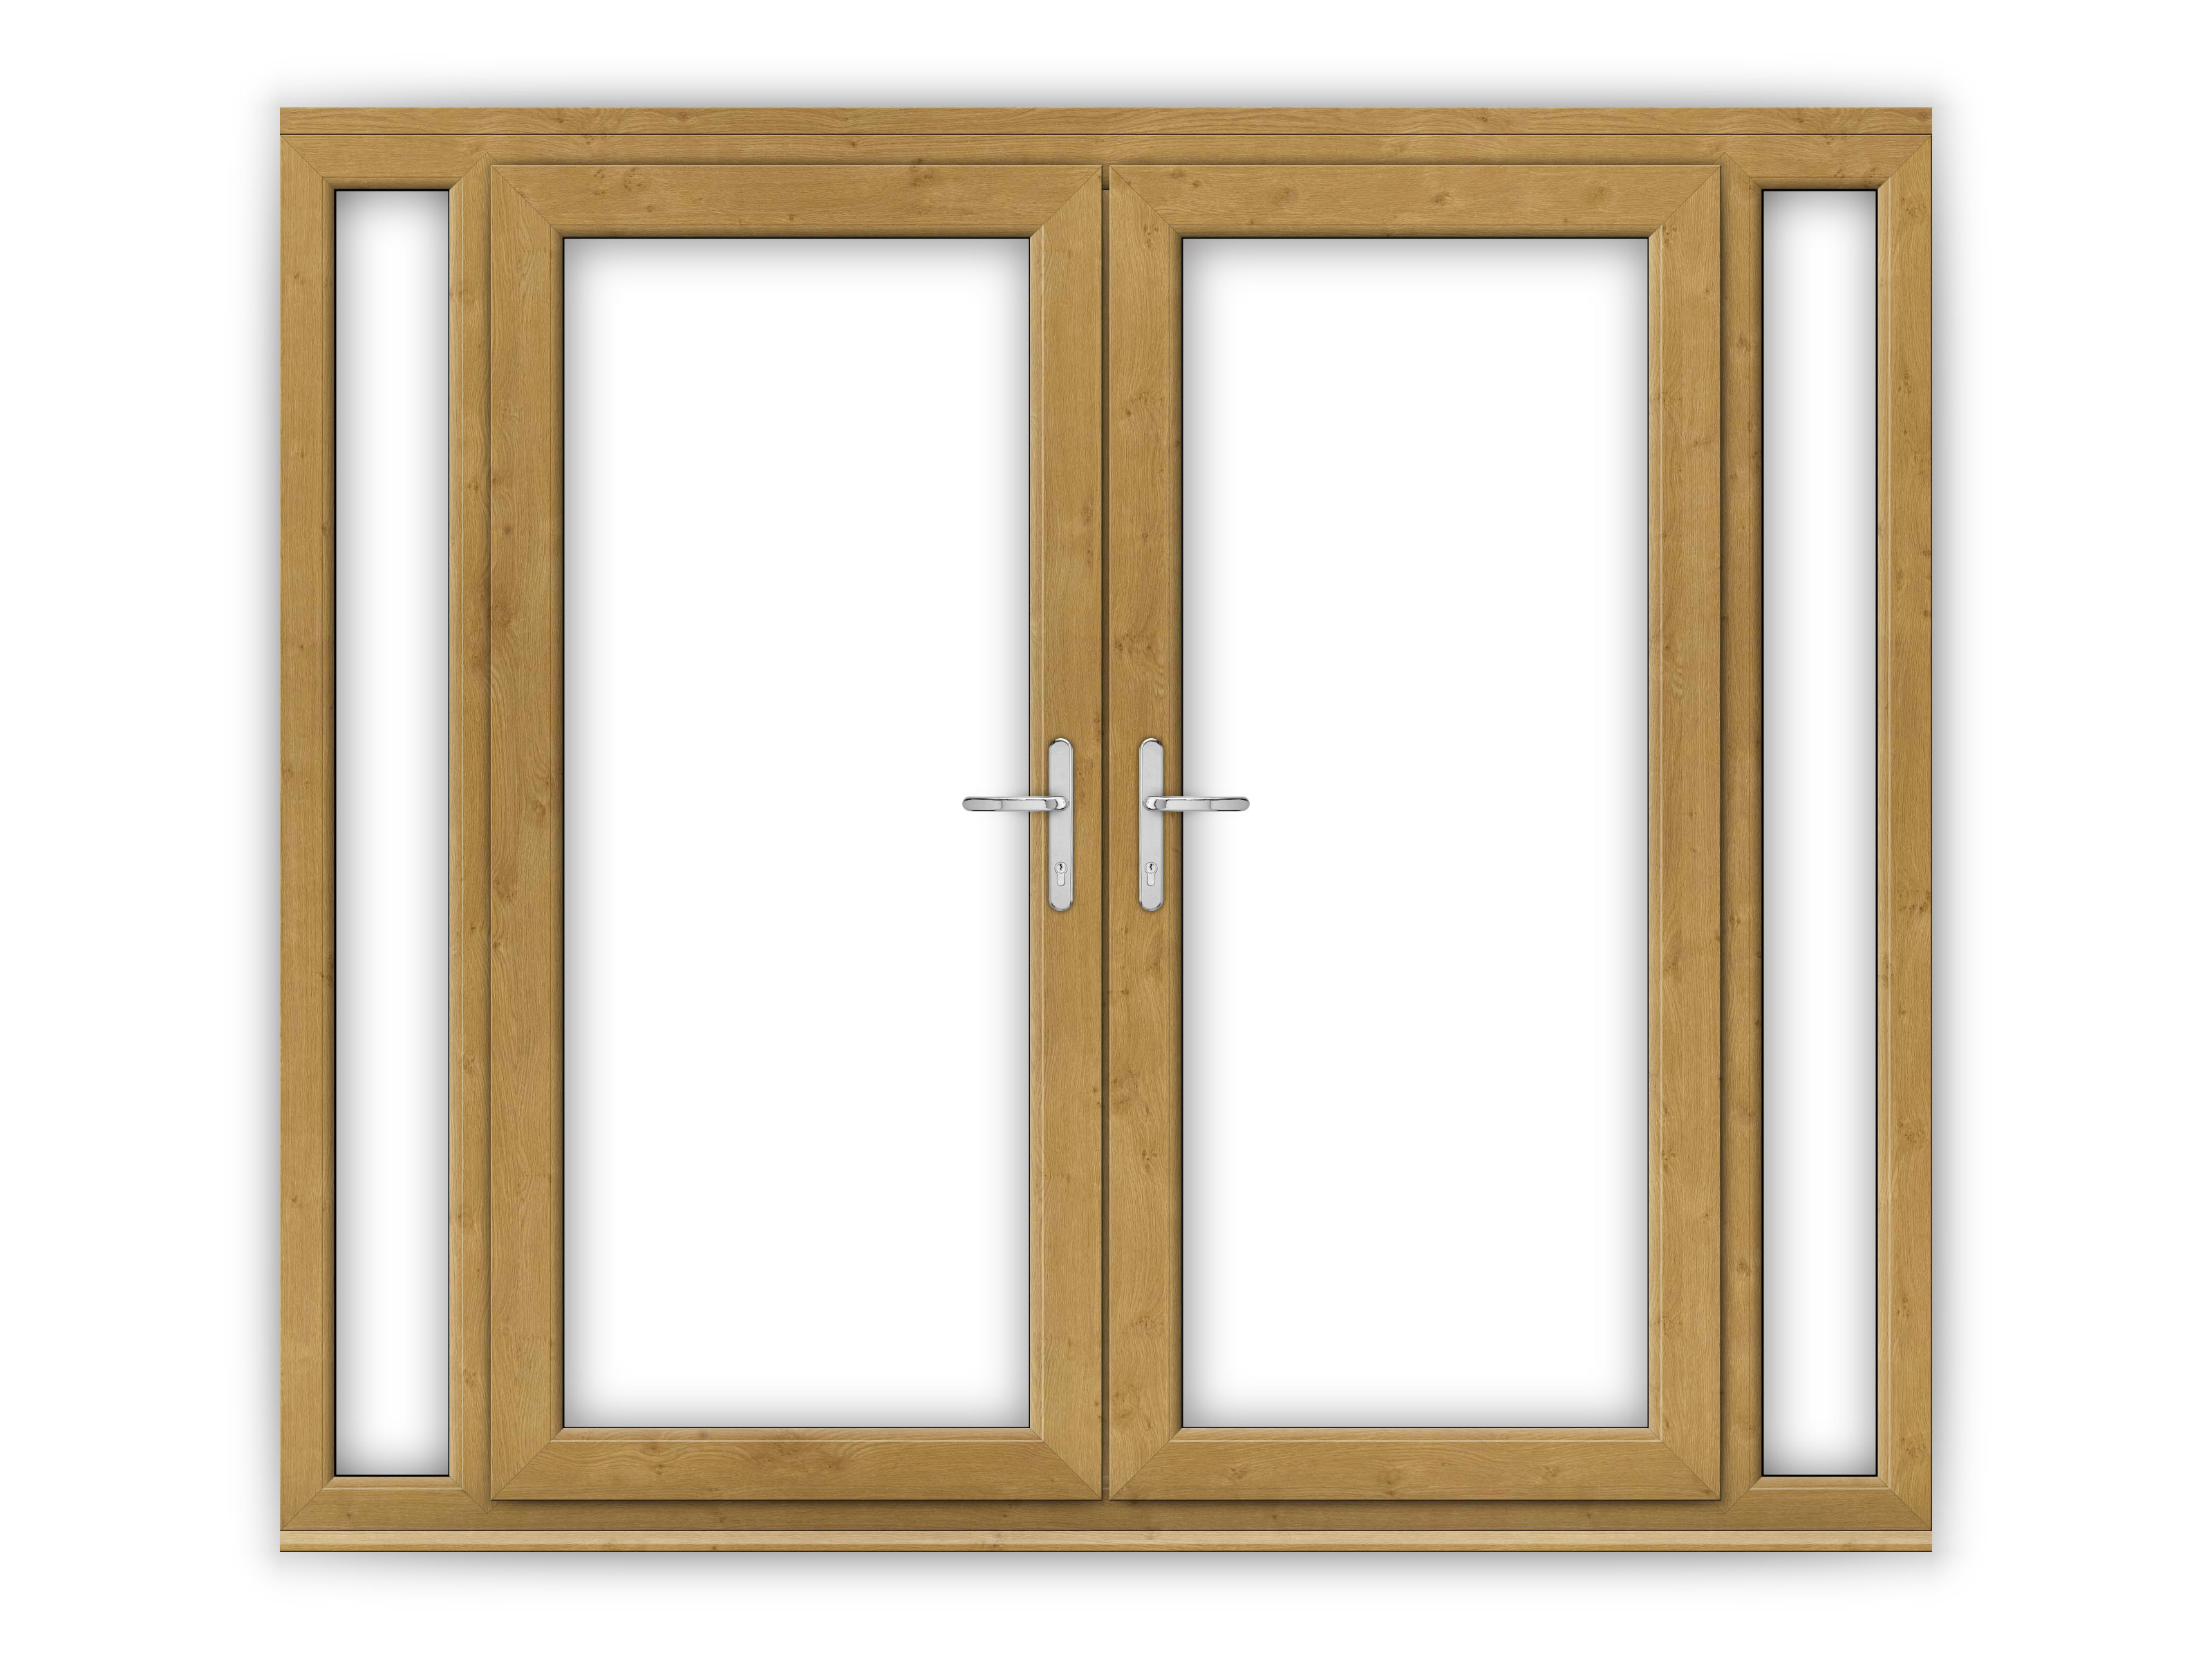 6ft irish oak upvc french doors with narrow side panels for Narrow interior french doors